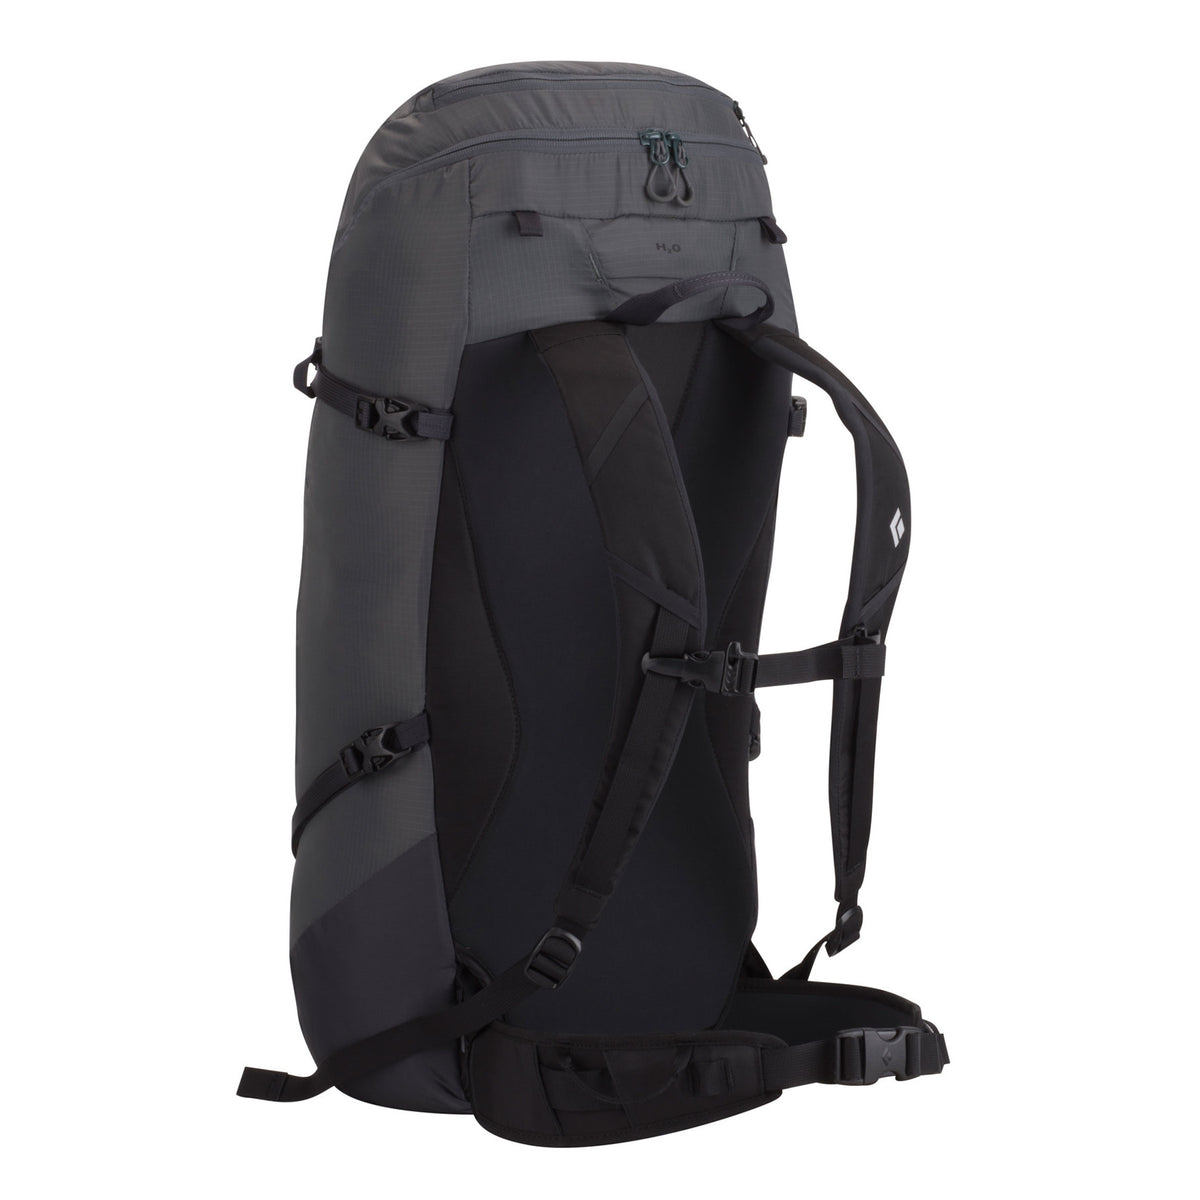 Rear of Black Diamond Speed Zip 33 pack showing strap design detail